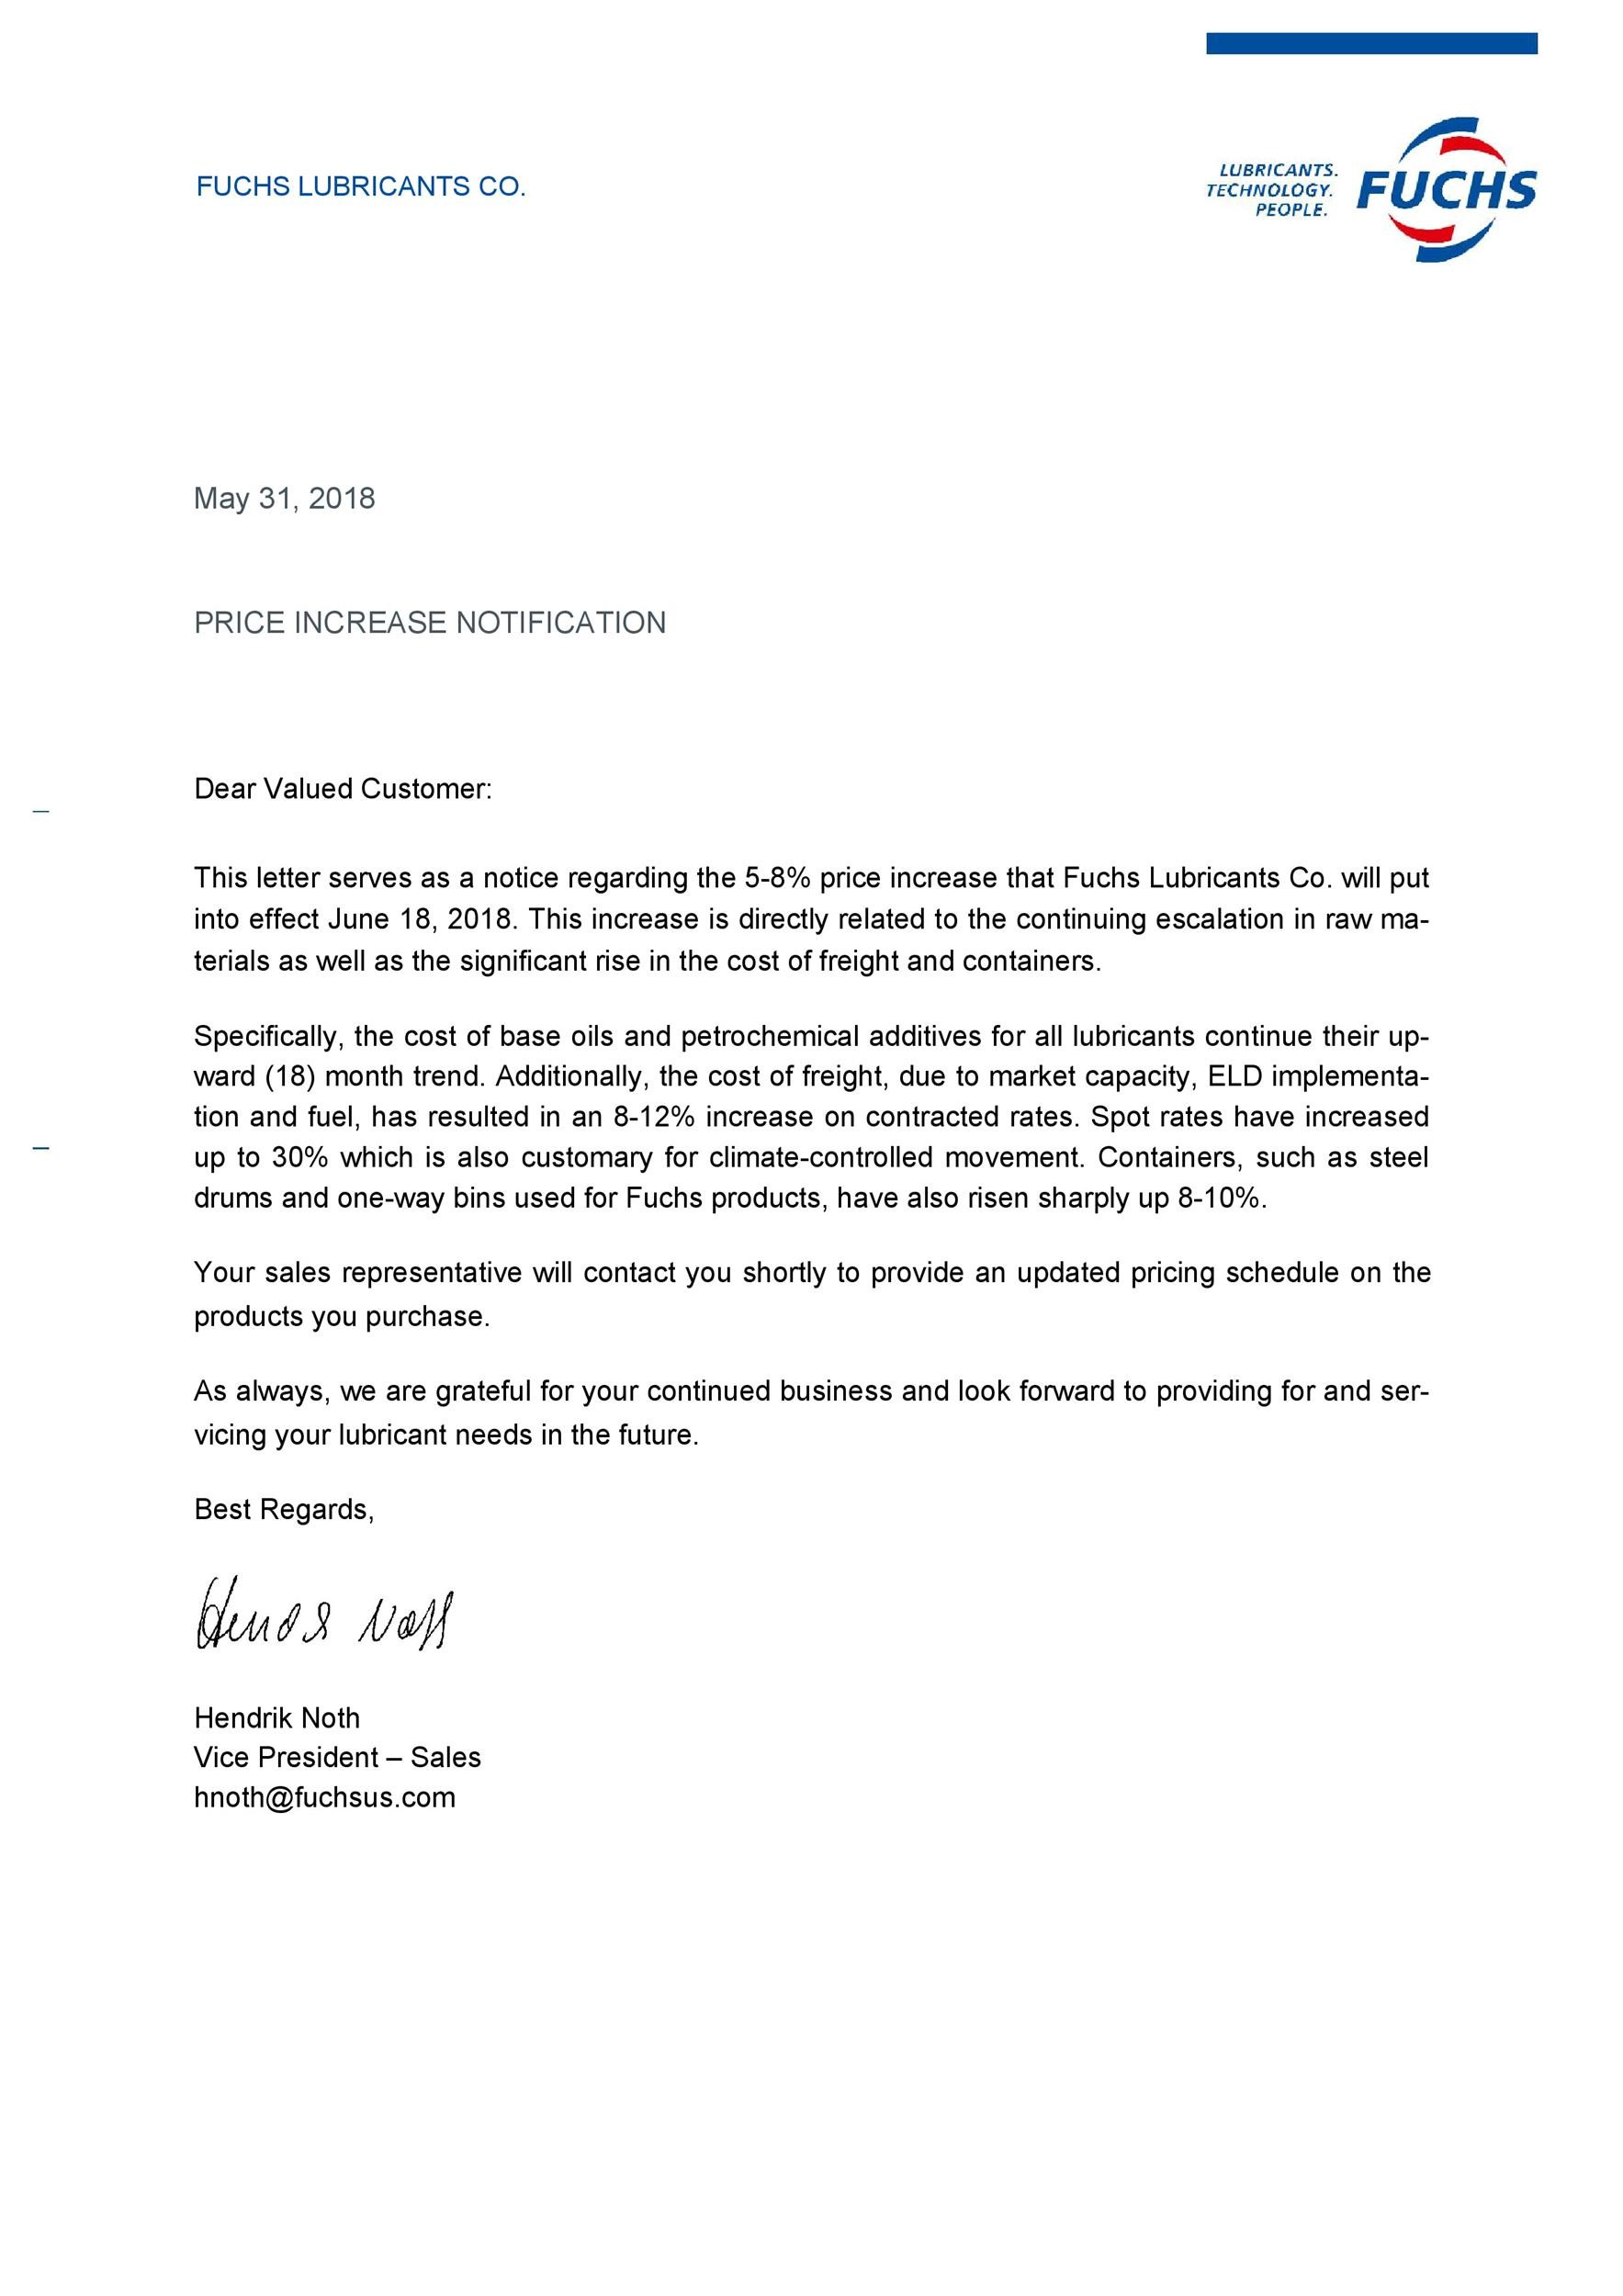 50 Effective Price / Rate Increase Letters (+Tips) ᐅ Template Lab